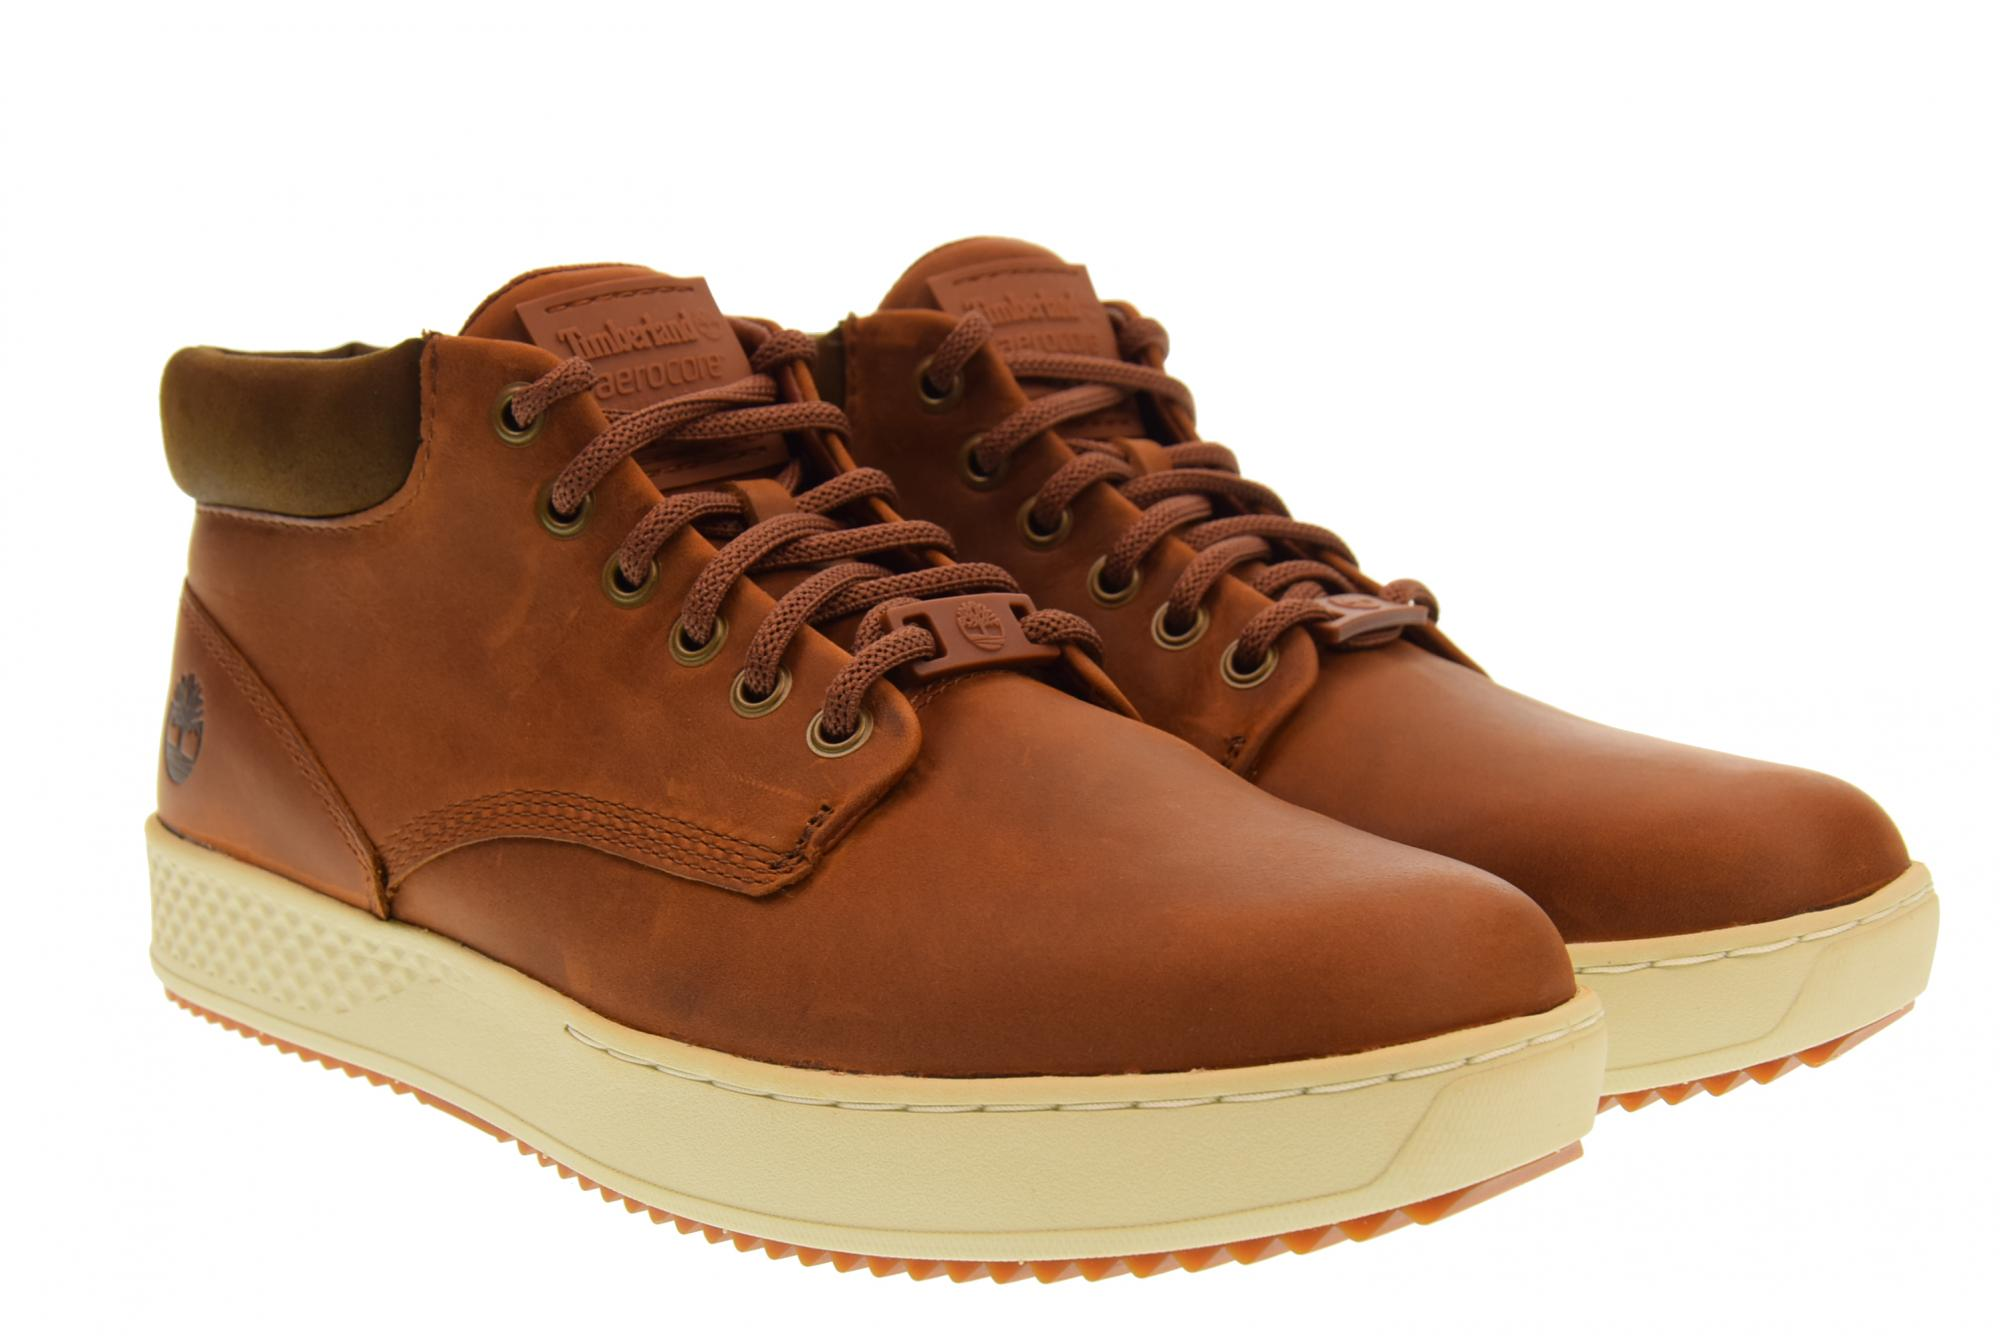 Timberland A18s Zapatillas Zapatos A1tfb Hombre Ebay SvqSw7rx